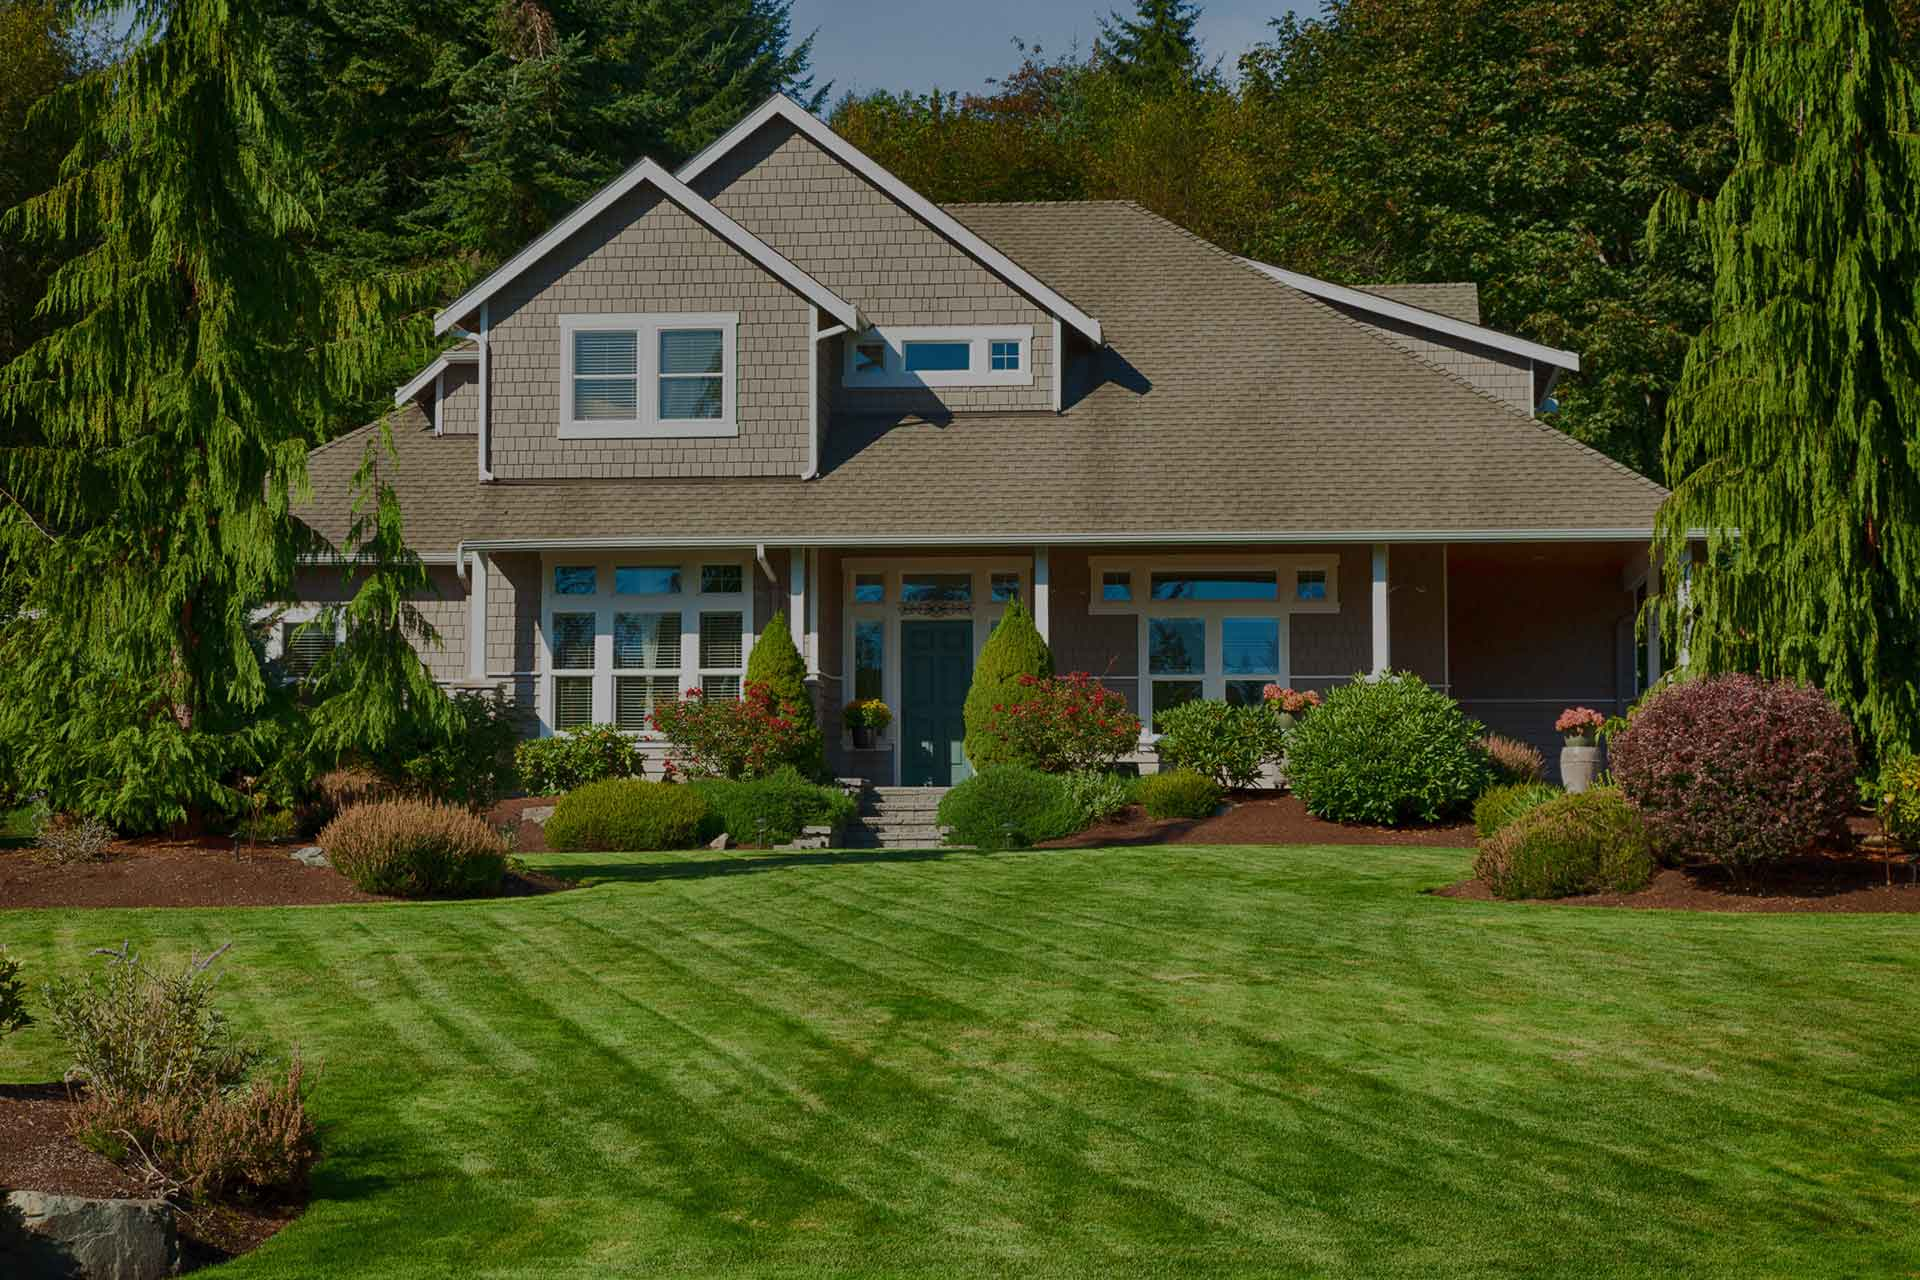 Add mulch to your lawn care program for a finishing touch